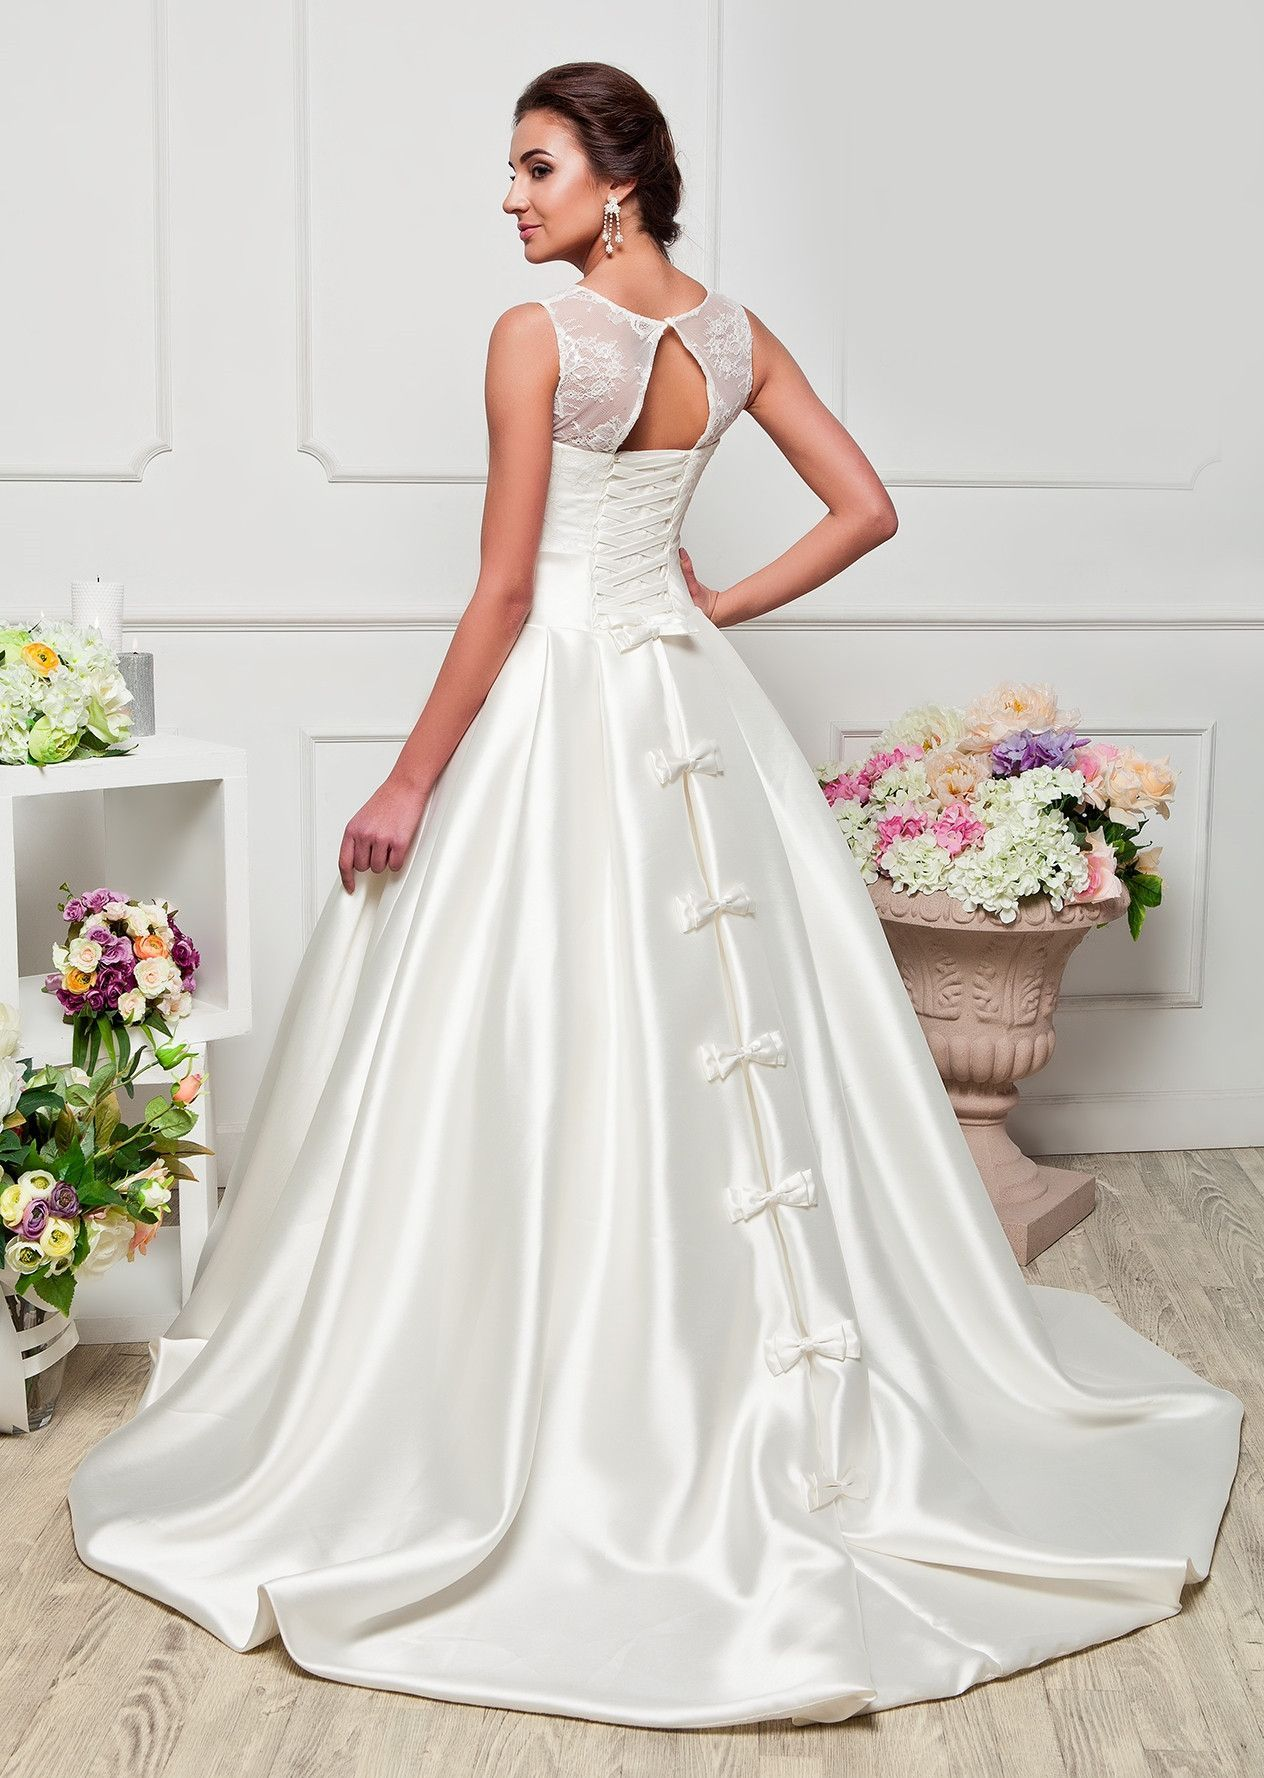 Satin Wedding Dress With Ribbon And Beading Crystal Long Lace